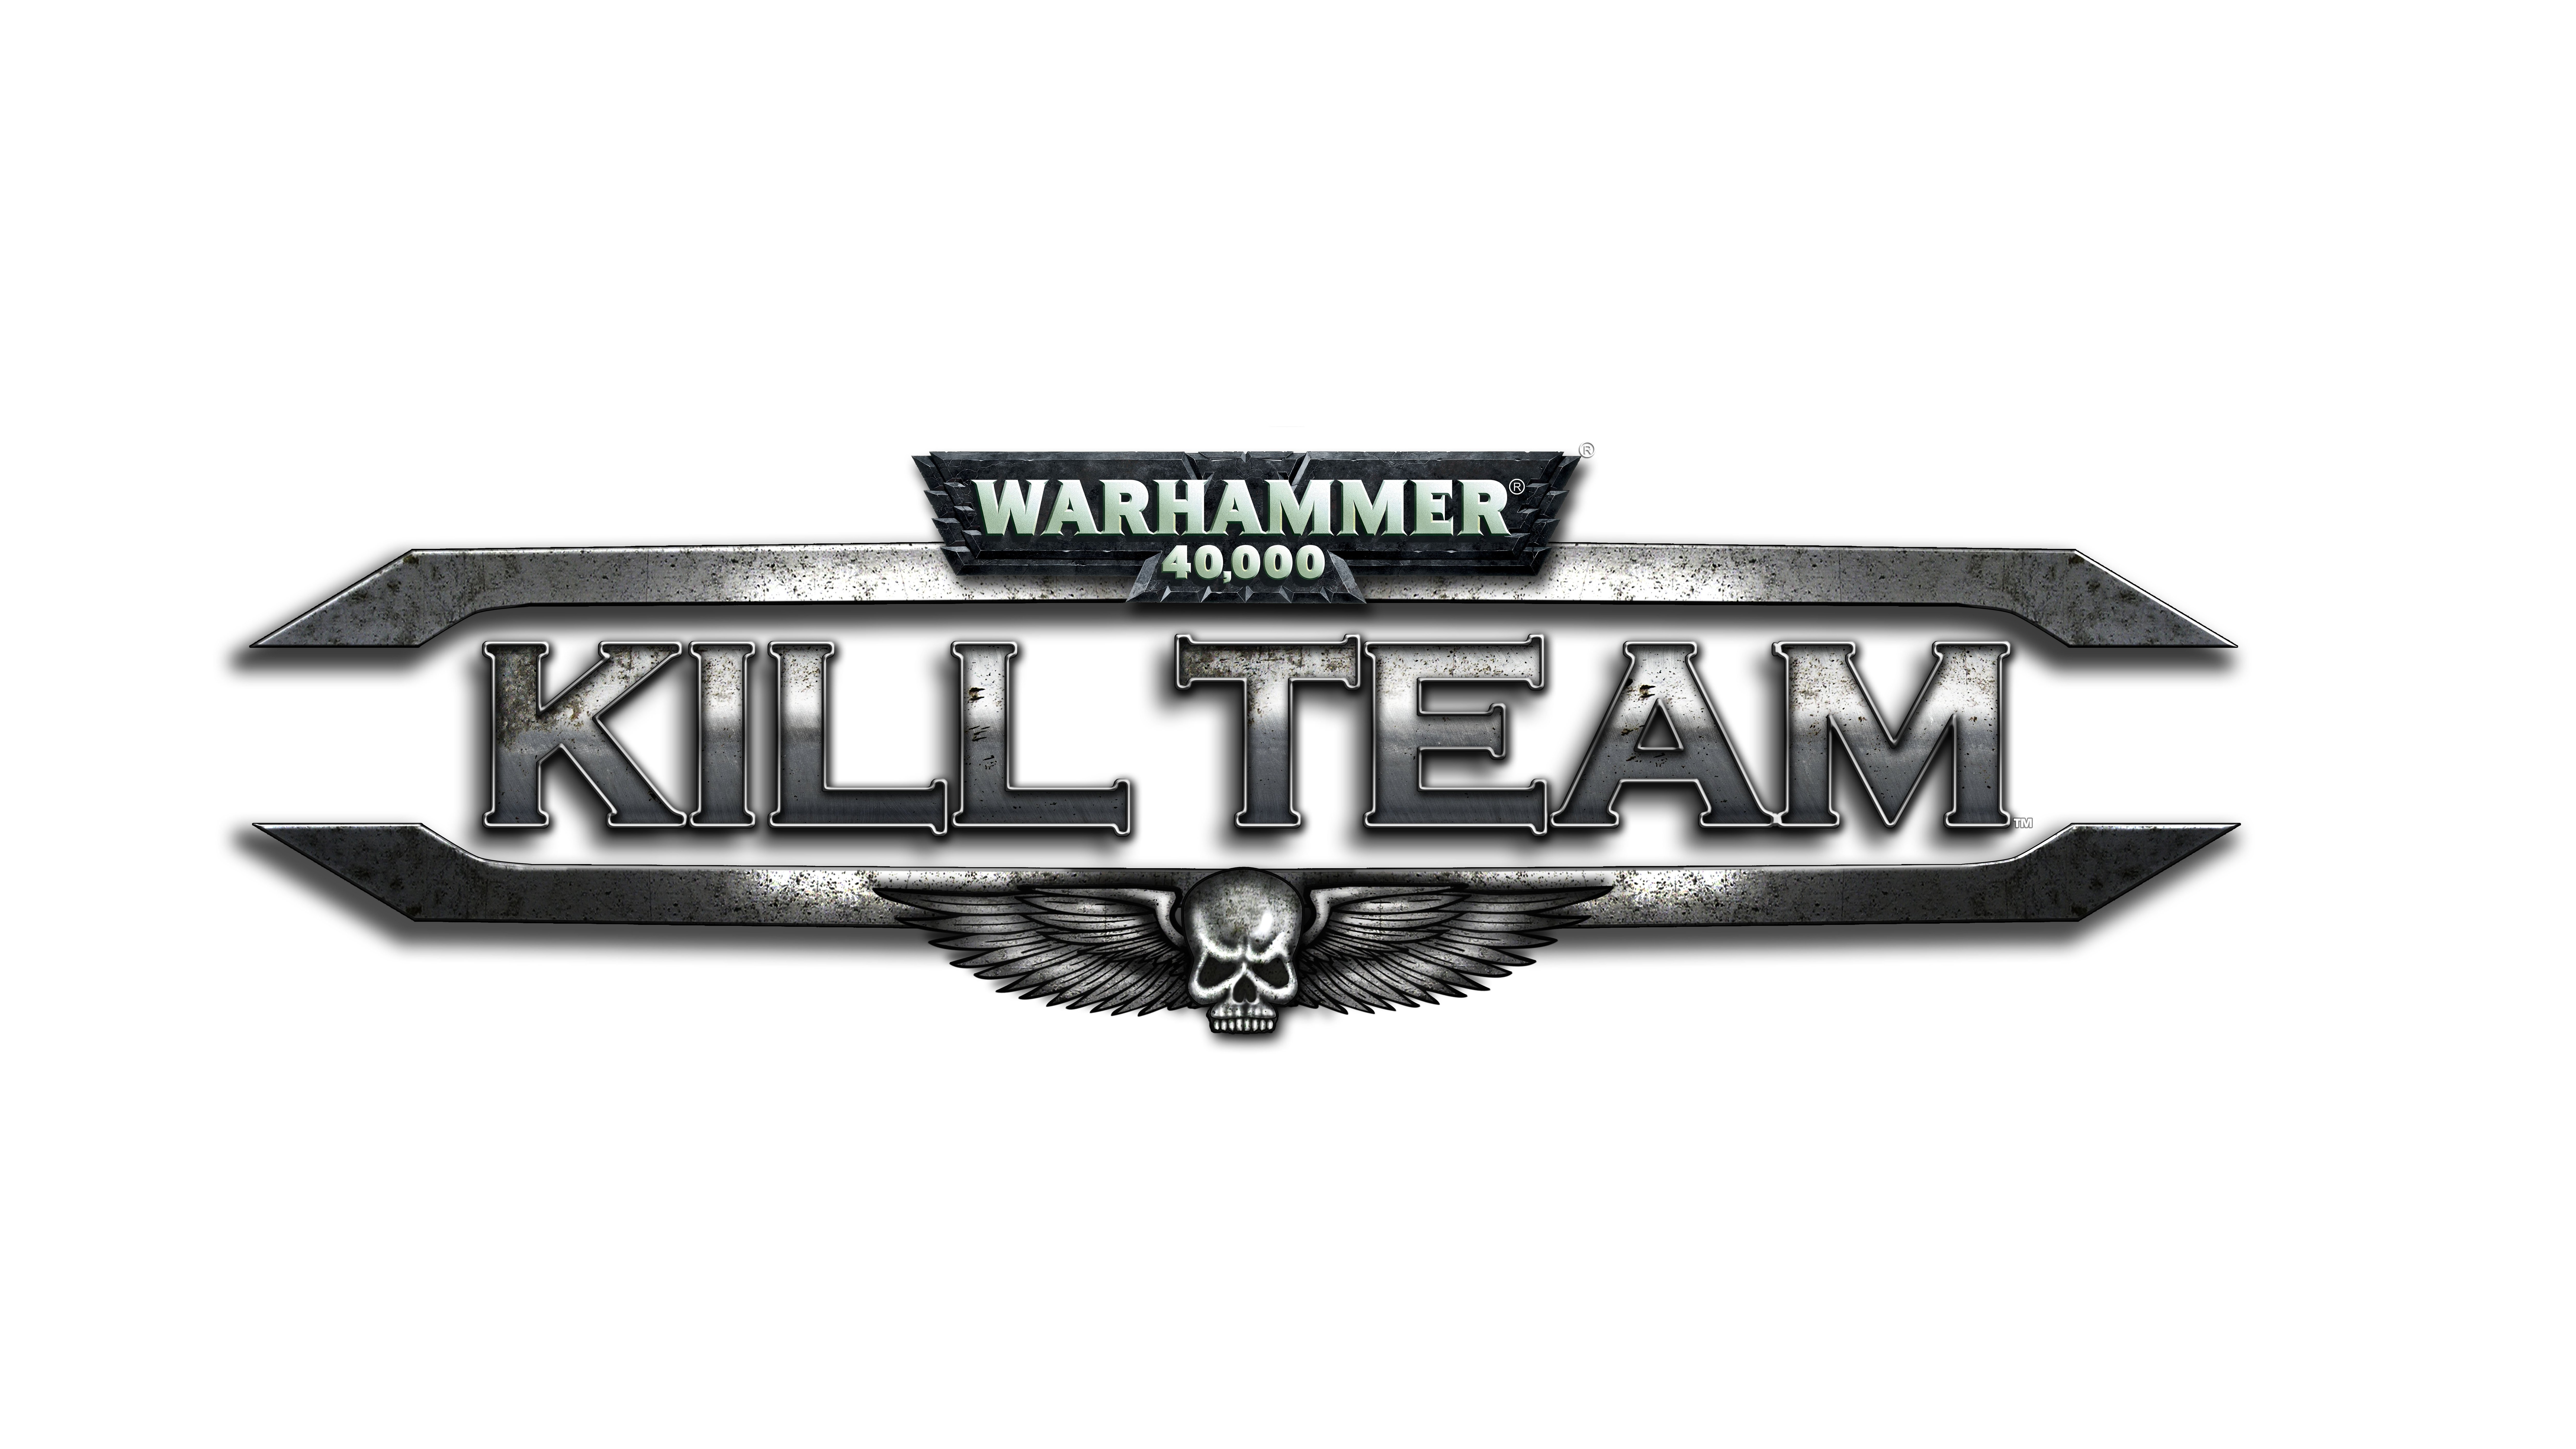 Box art - Warhammer 40,000: Kill Team